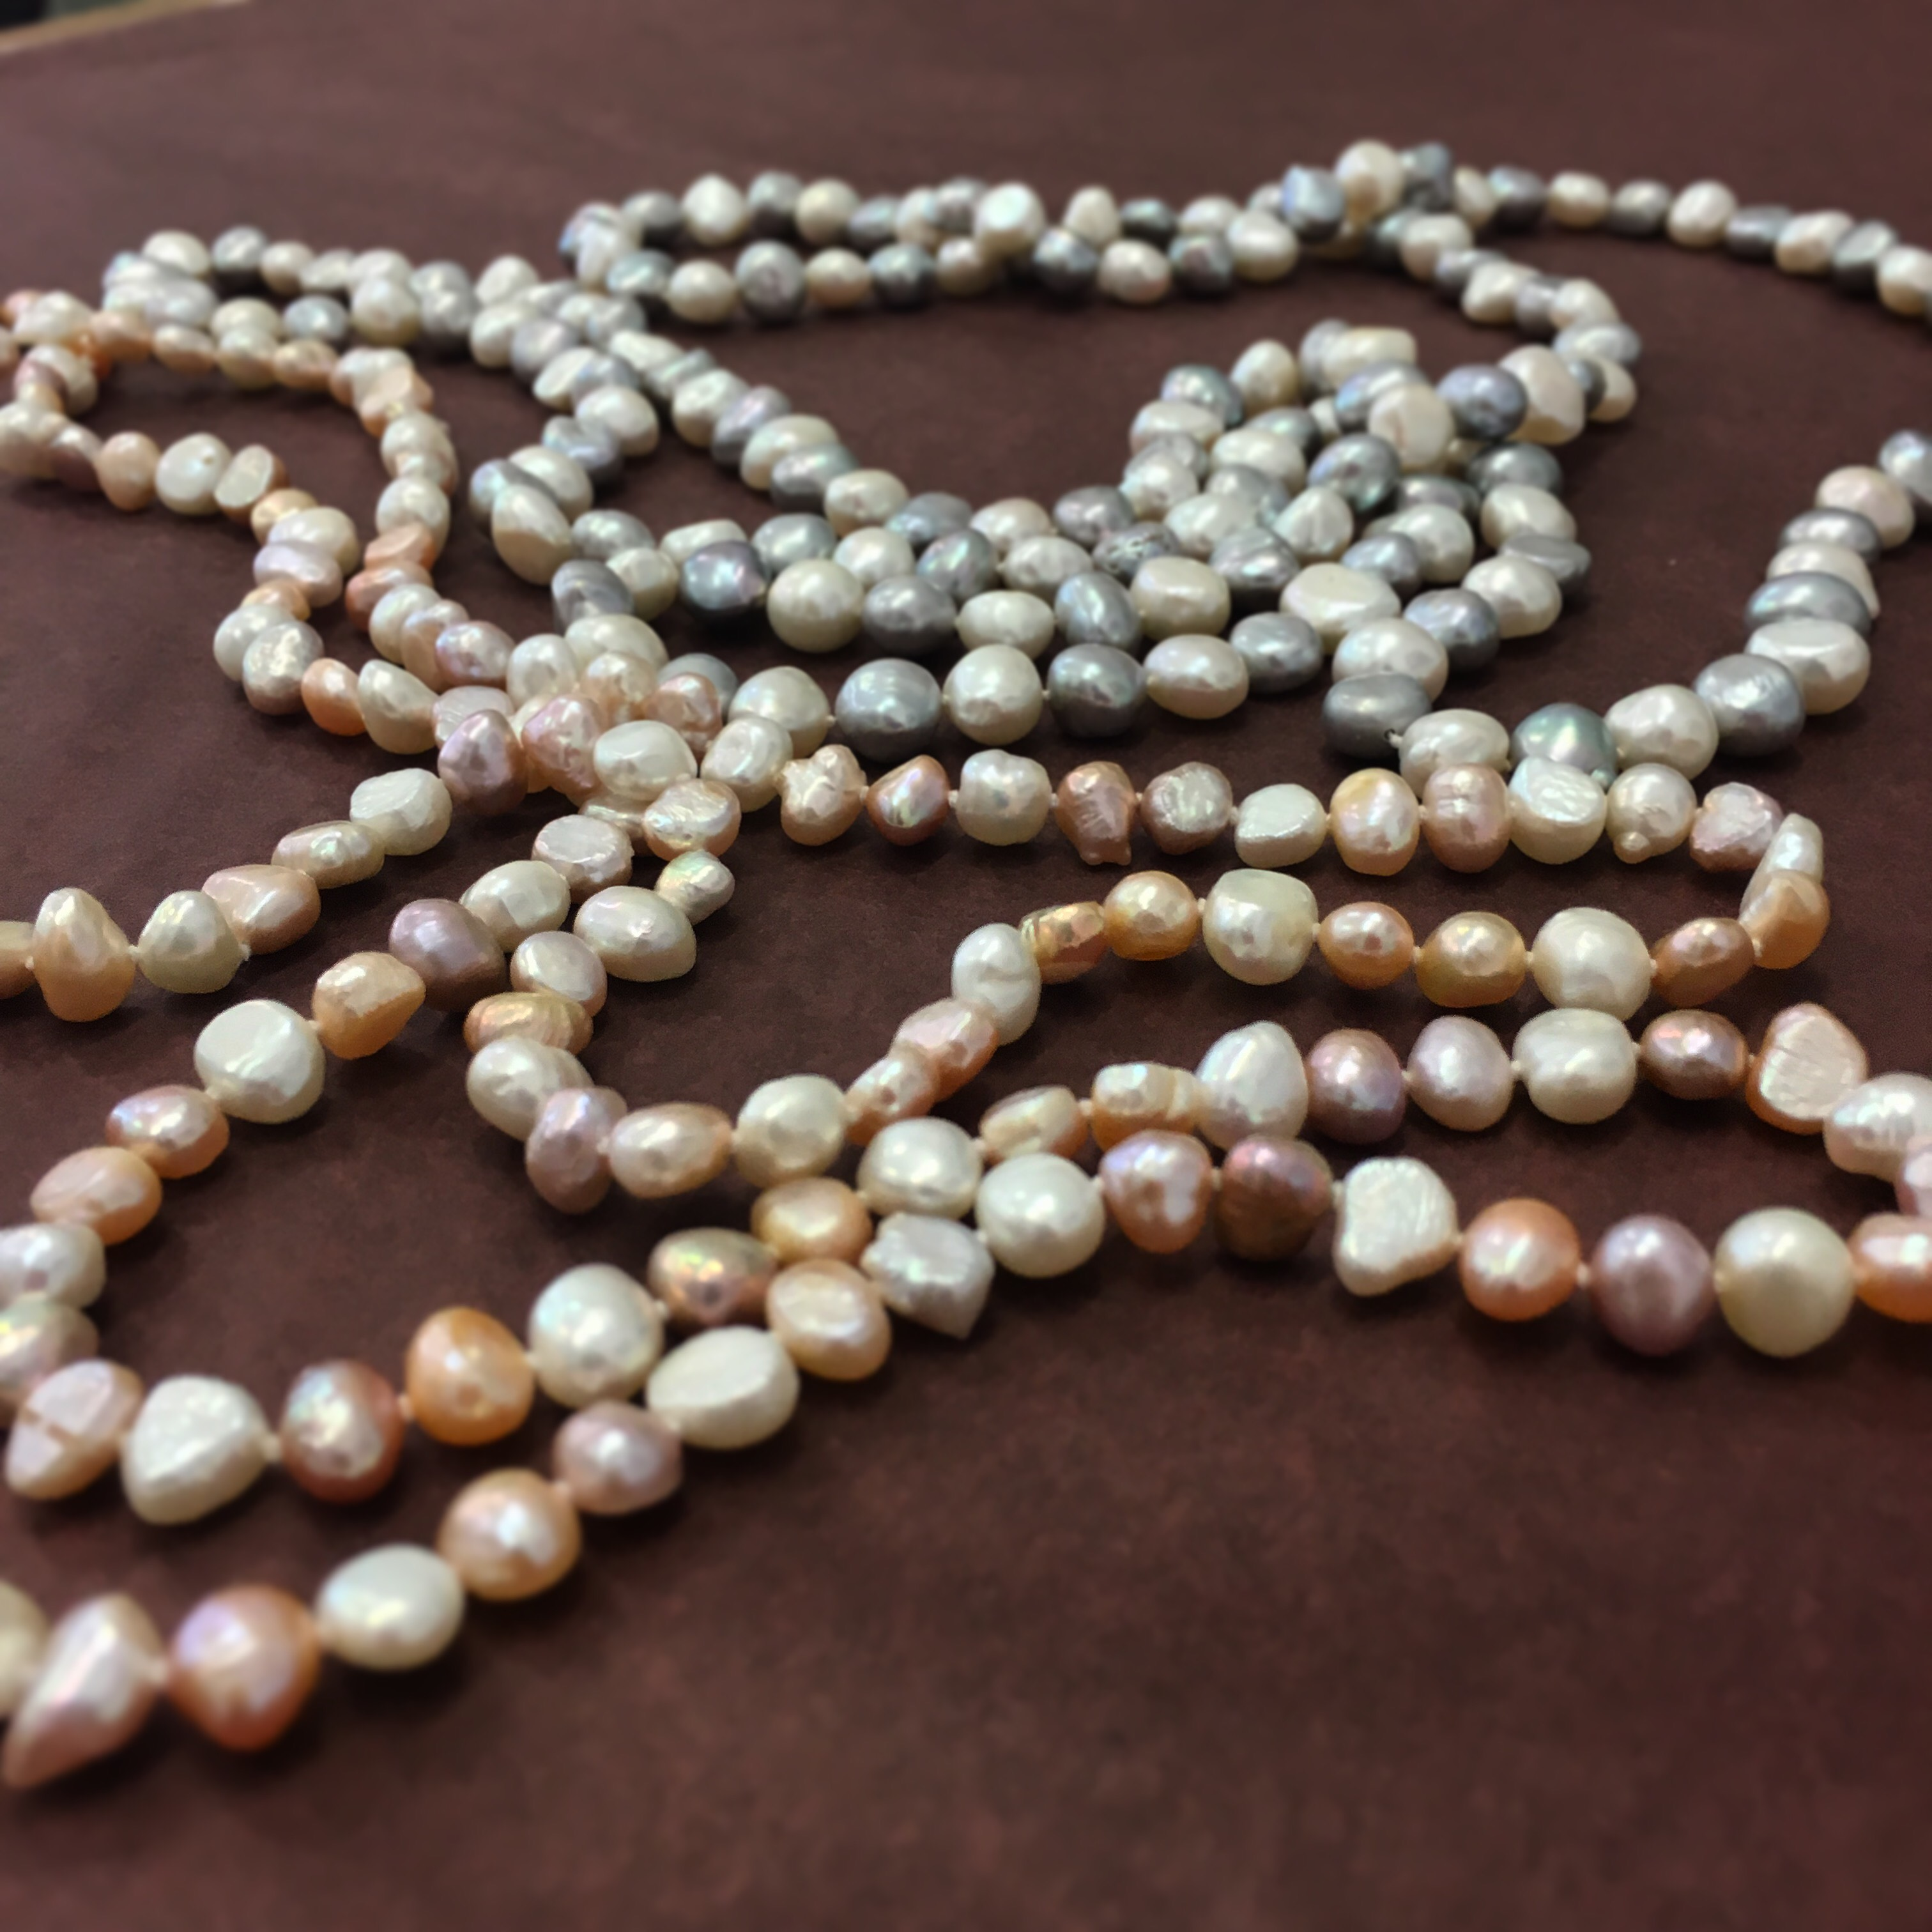 Pearl Knotting 2: Continuous Knotting